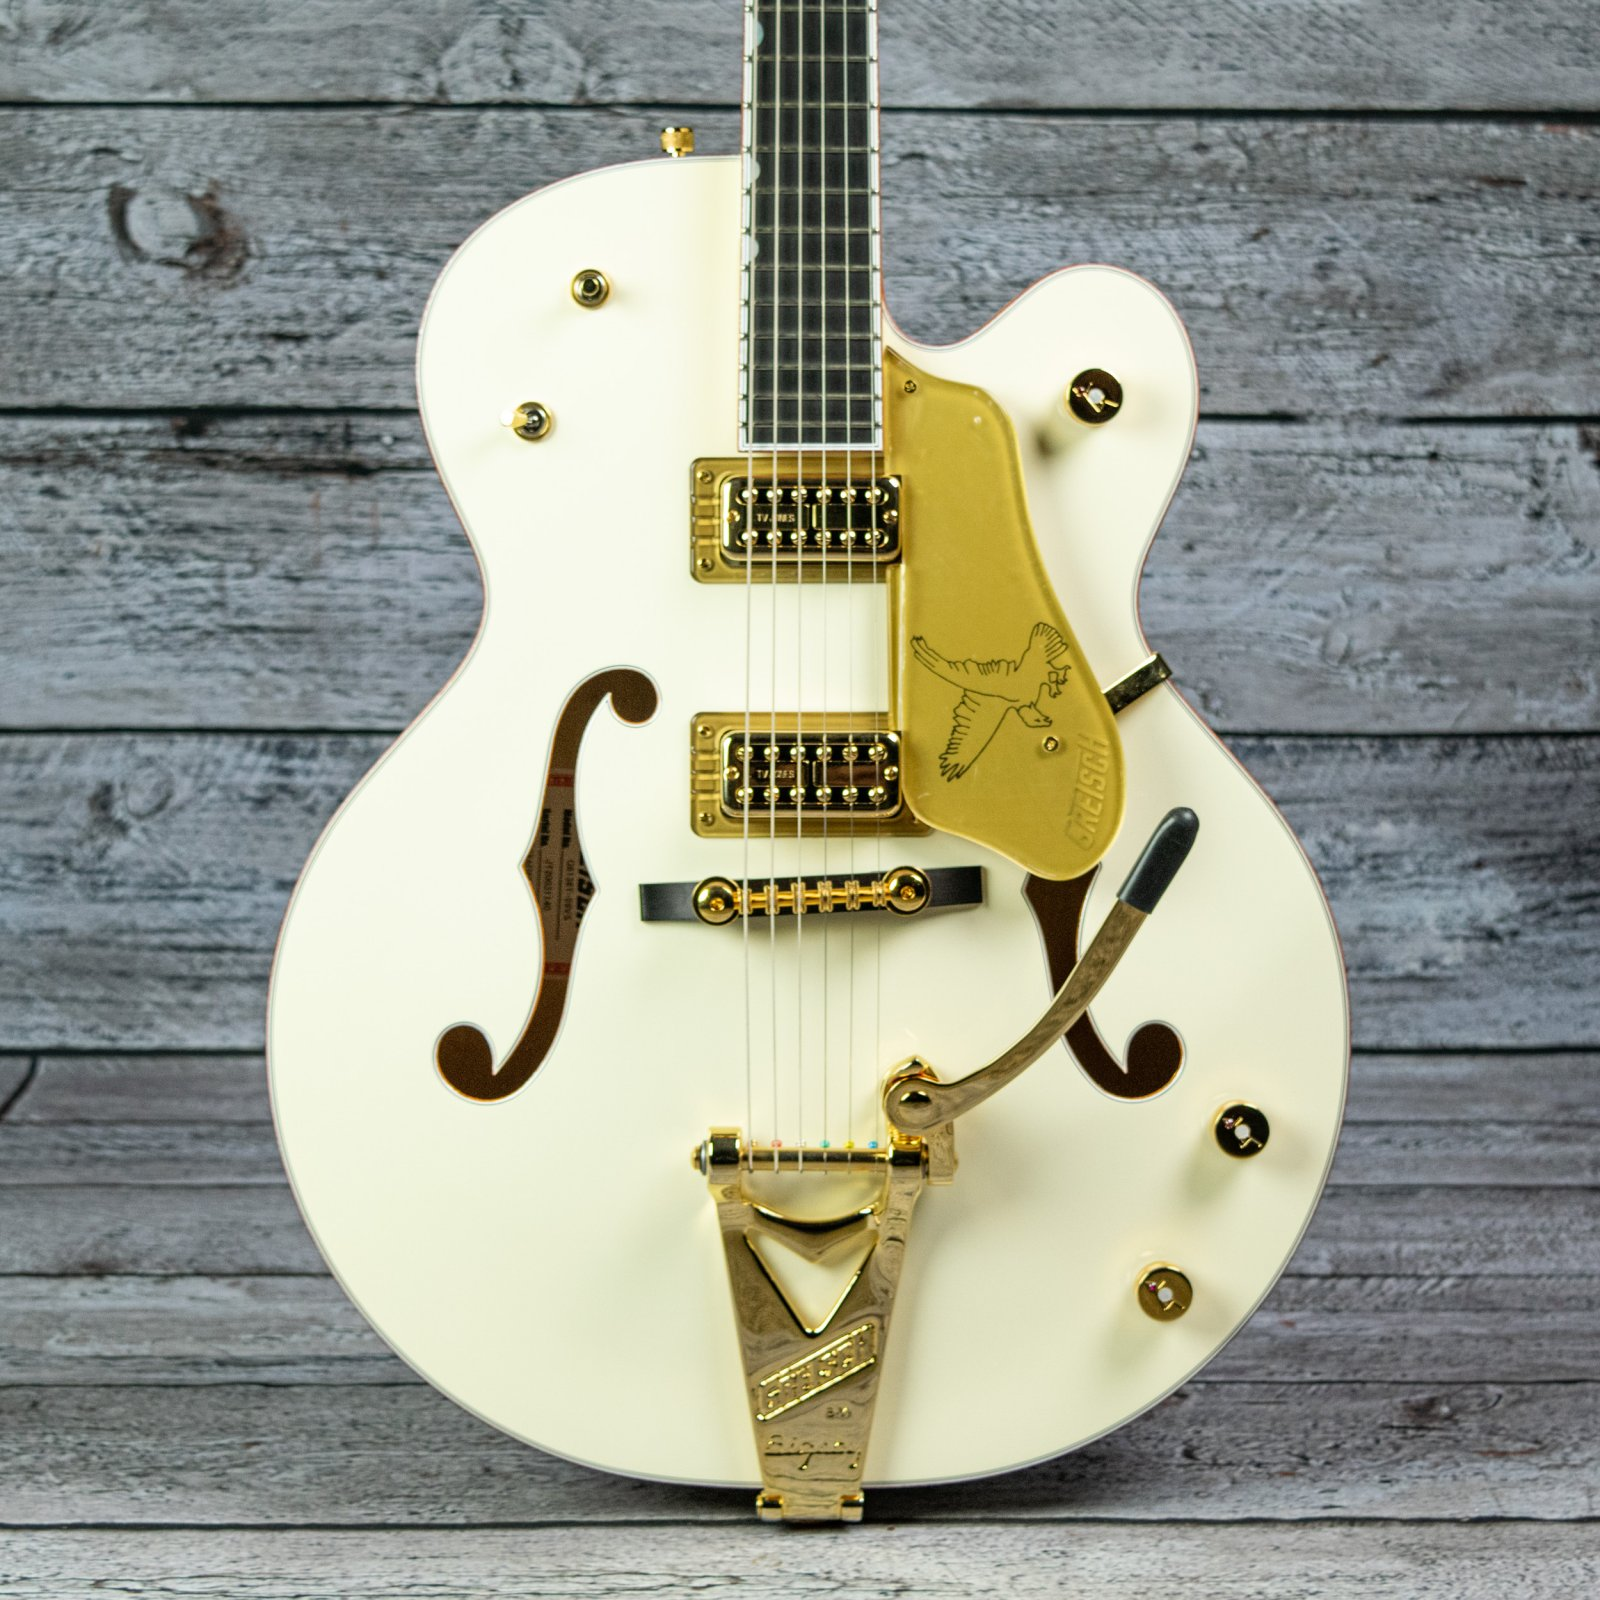 Gretsch G6136T-59 Vintage Select Edition '59 White Falcon Hollow Body with Bigsby